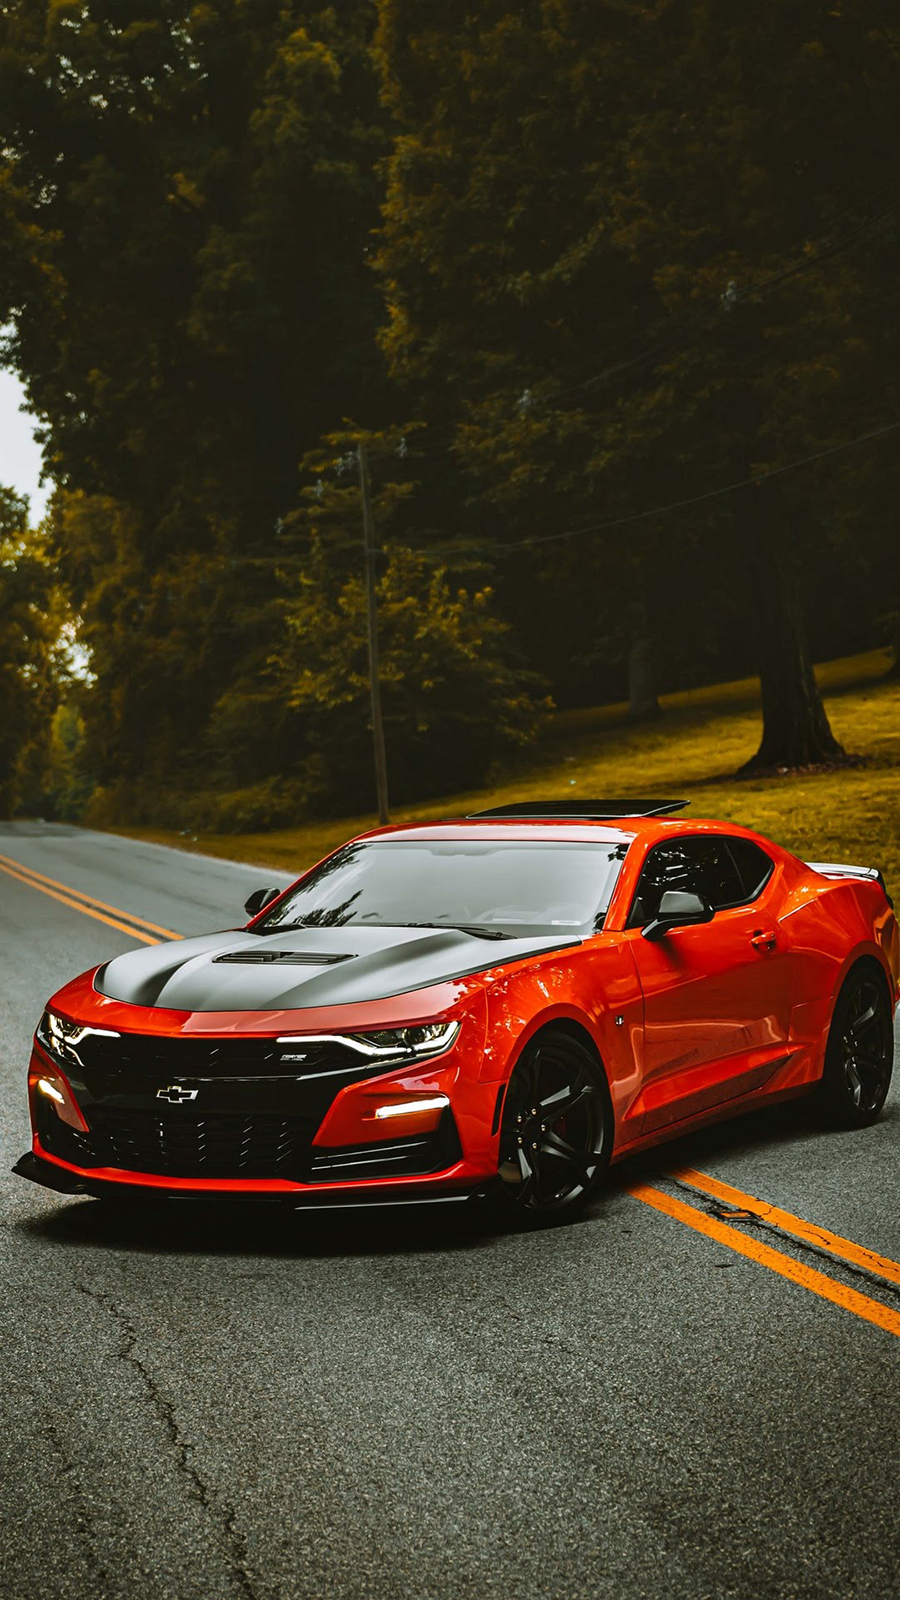 Camaro Full HD Wallpapers Free Download